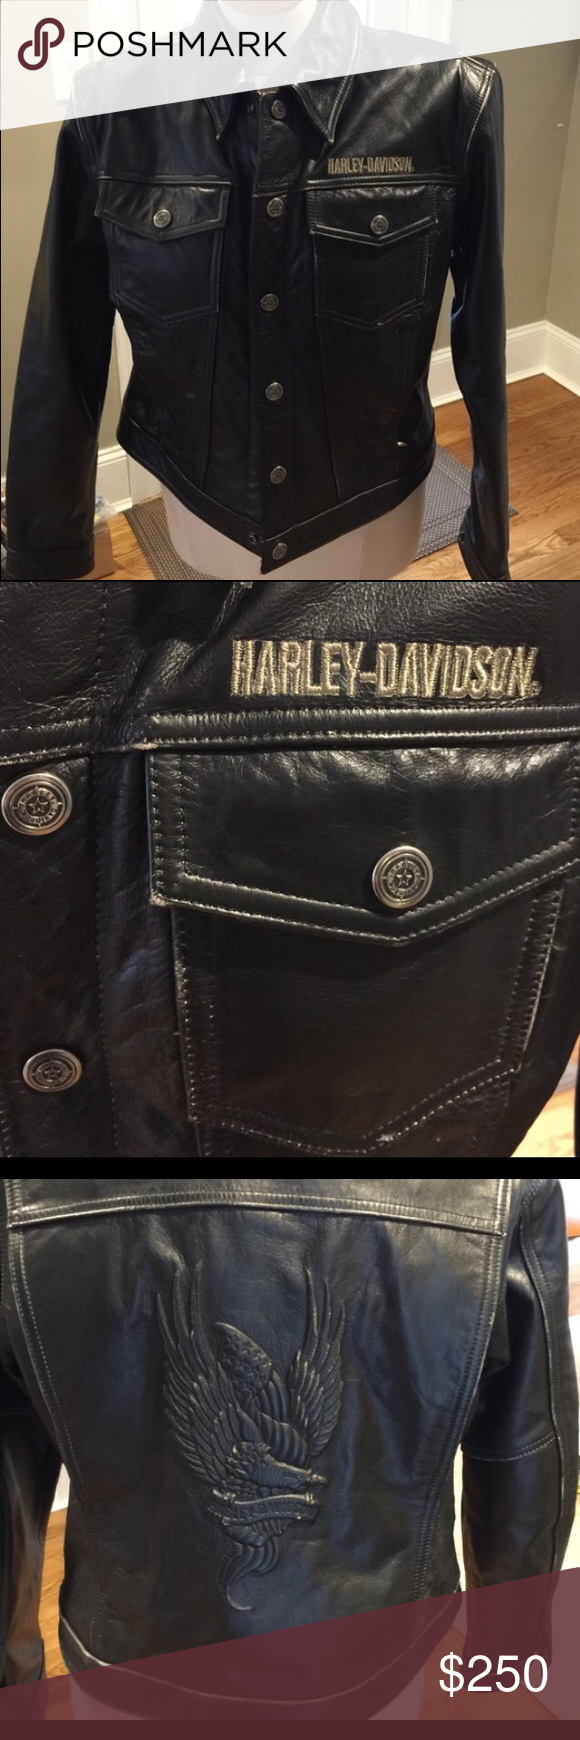 Harley Davidson Leather Jacket Harley Davidson black